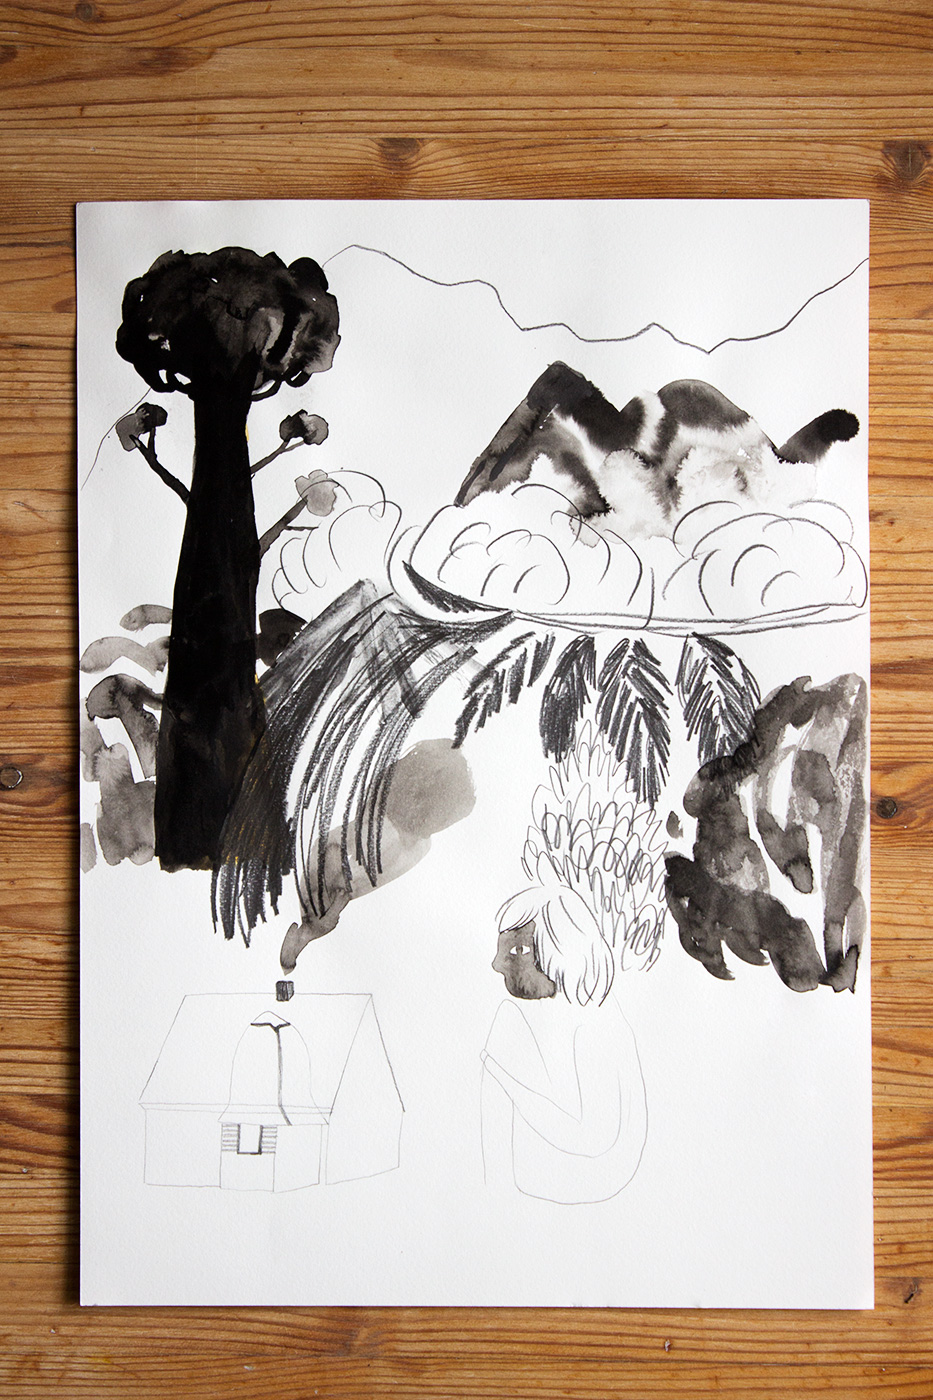 drawings, gouache, watercolors, figurative, geometric, landscape, portraiture, architecture, botany, nature, black, grey, white, artliner, gouache, ink, paper, watercolor, buildings, decorative, flowers, interior, interior-design, scenery, trees, Buy original high quality art. Paintings, drawings, limited edition prints & posters by talented artists.